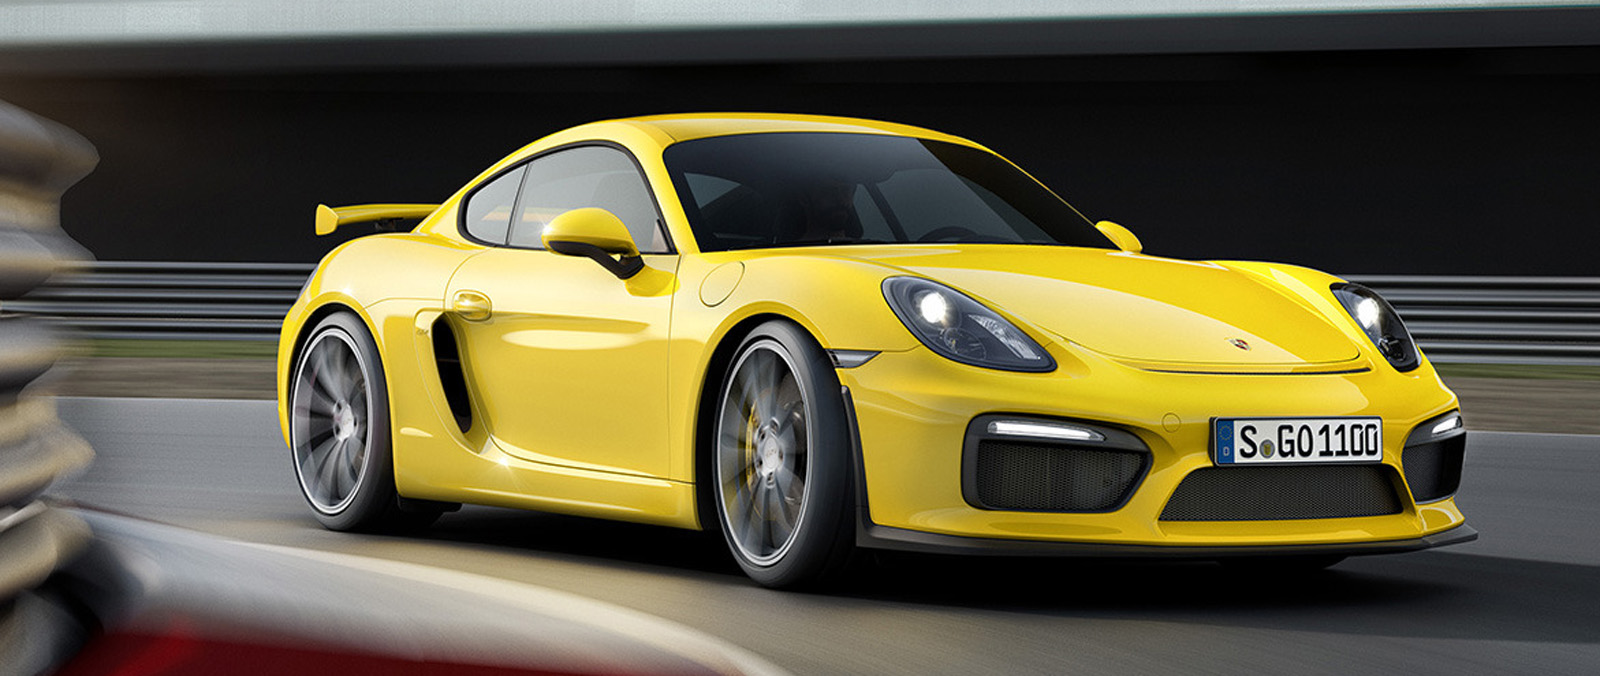 Porsche Cayman GT4 is pure sportwagen